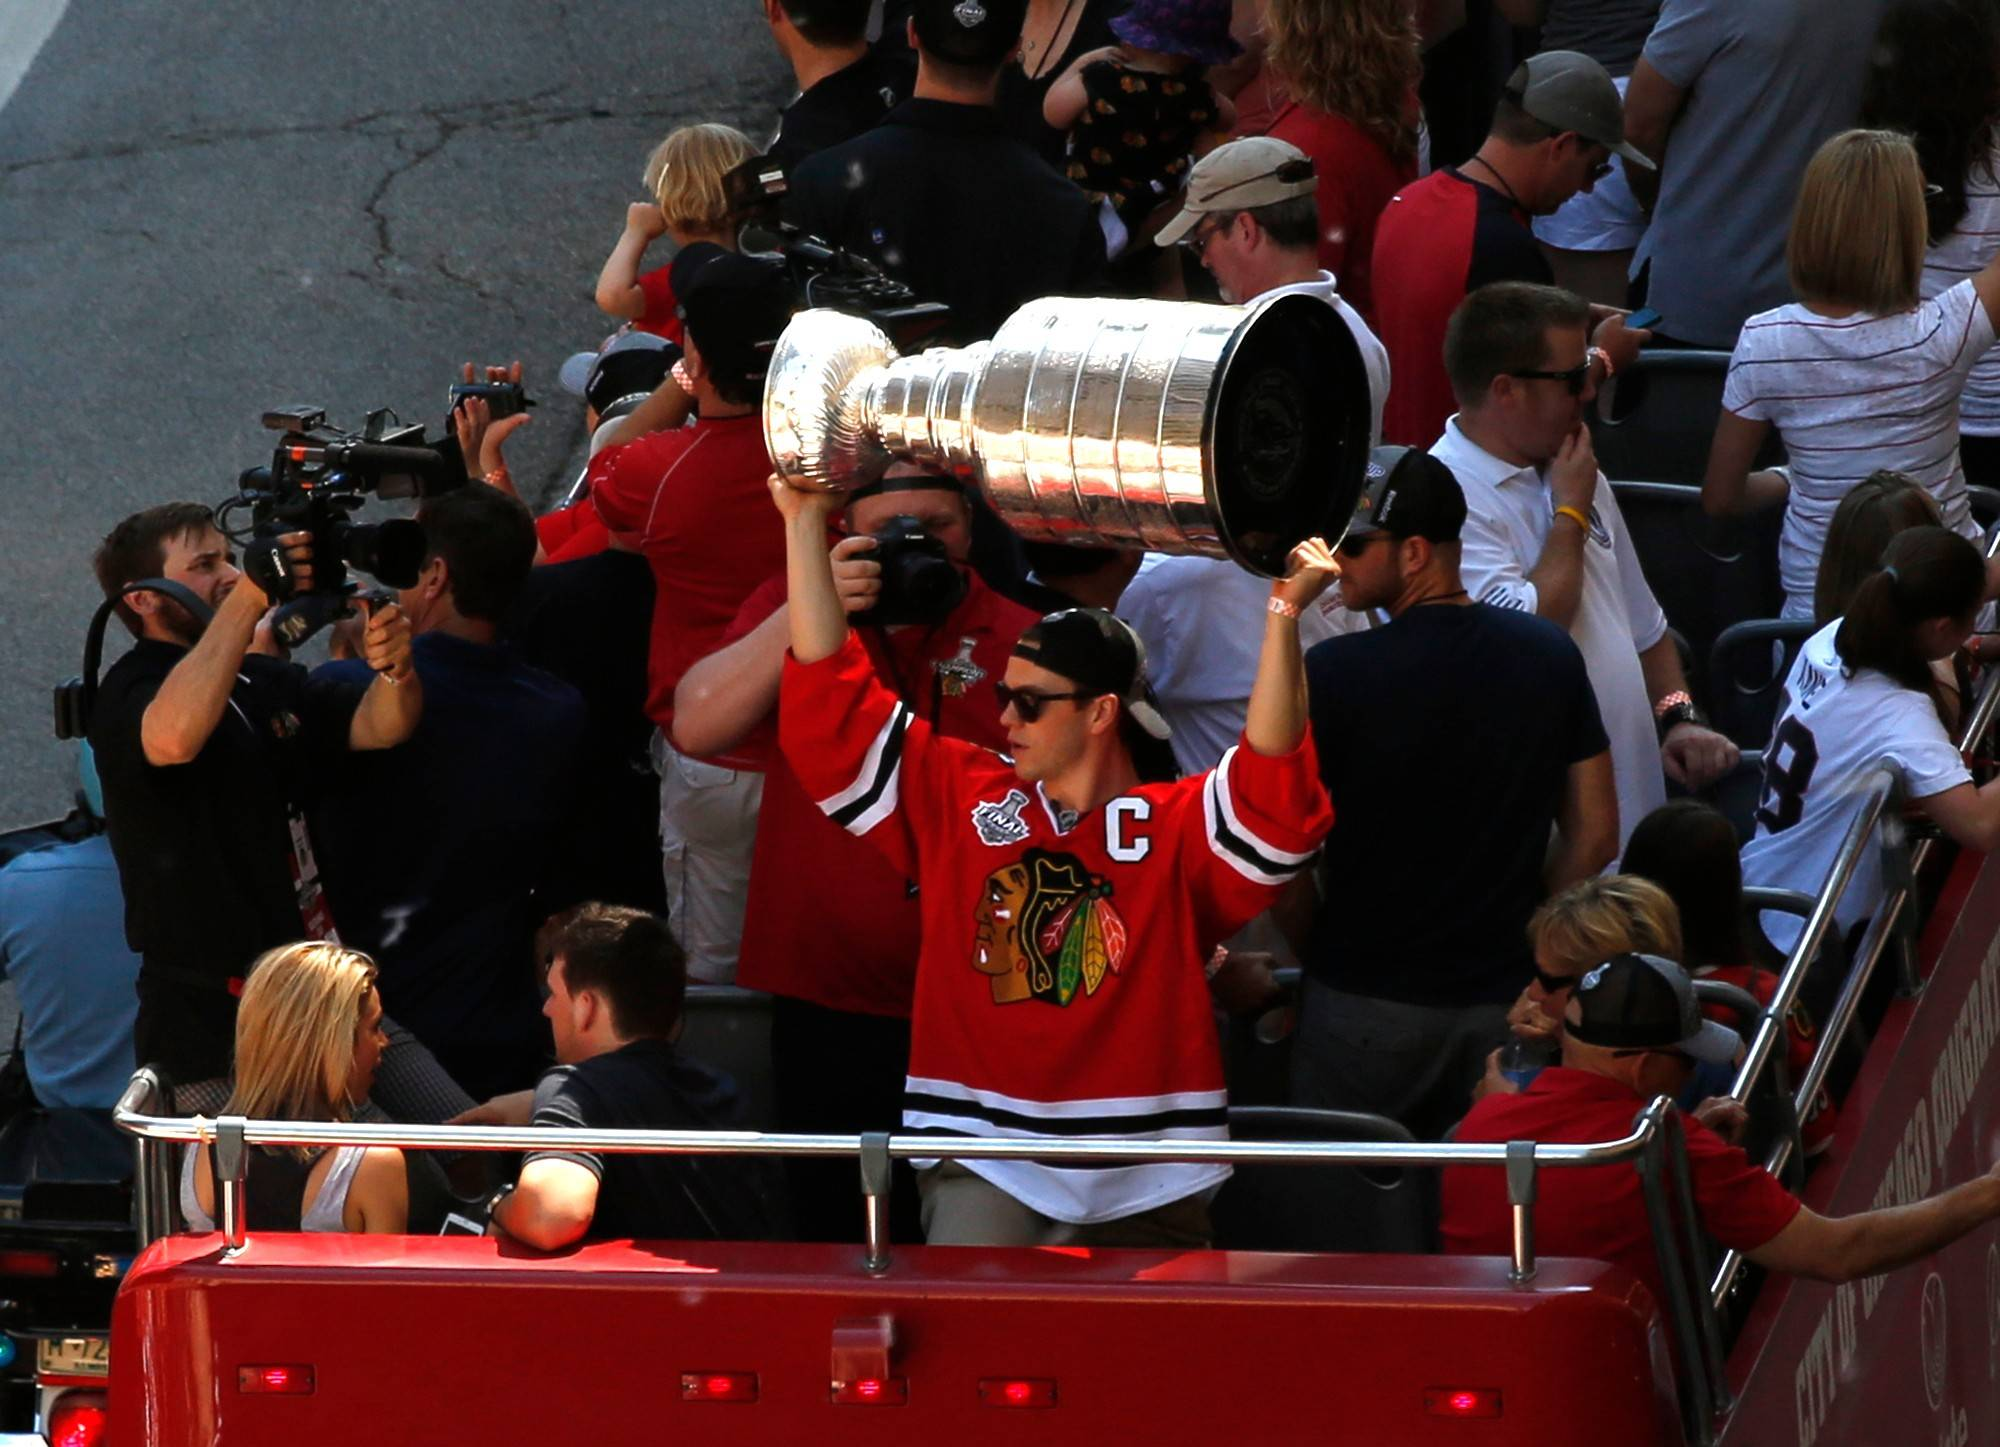 Jonathan Toews holds up the Stanley Cup during the Hawks' 2013 victory parade in Chicago. More than 2 million people are expected for Thursday's victory parade and rally at Soldier Field.